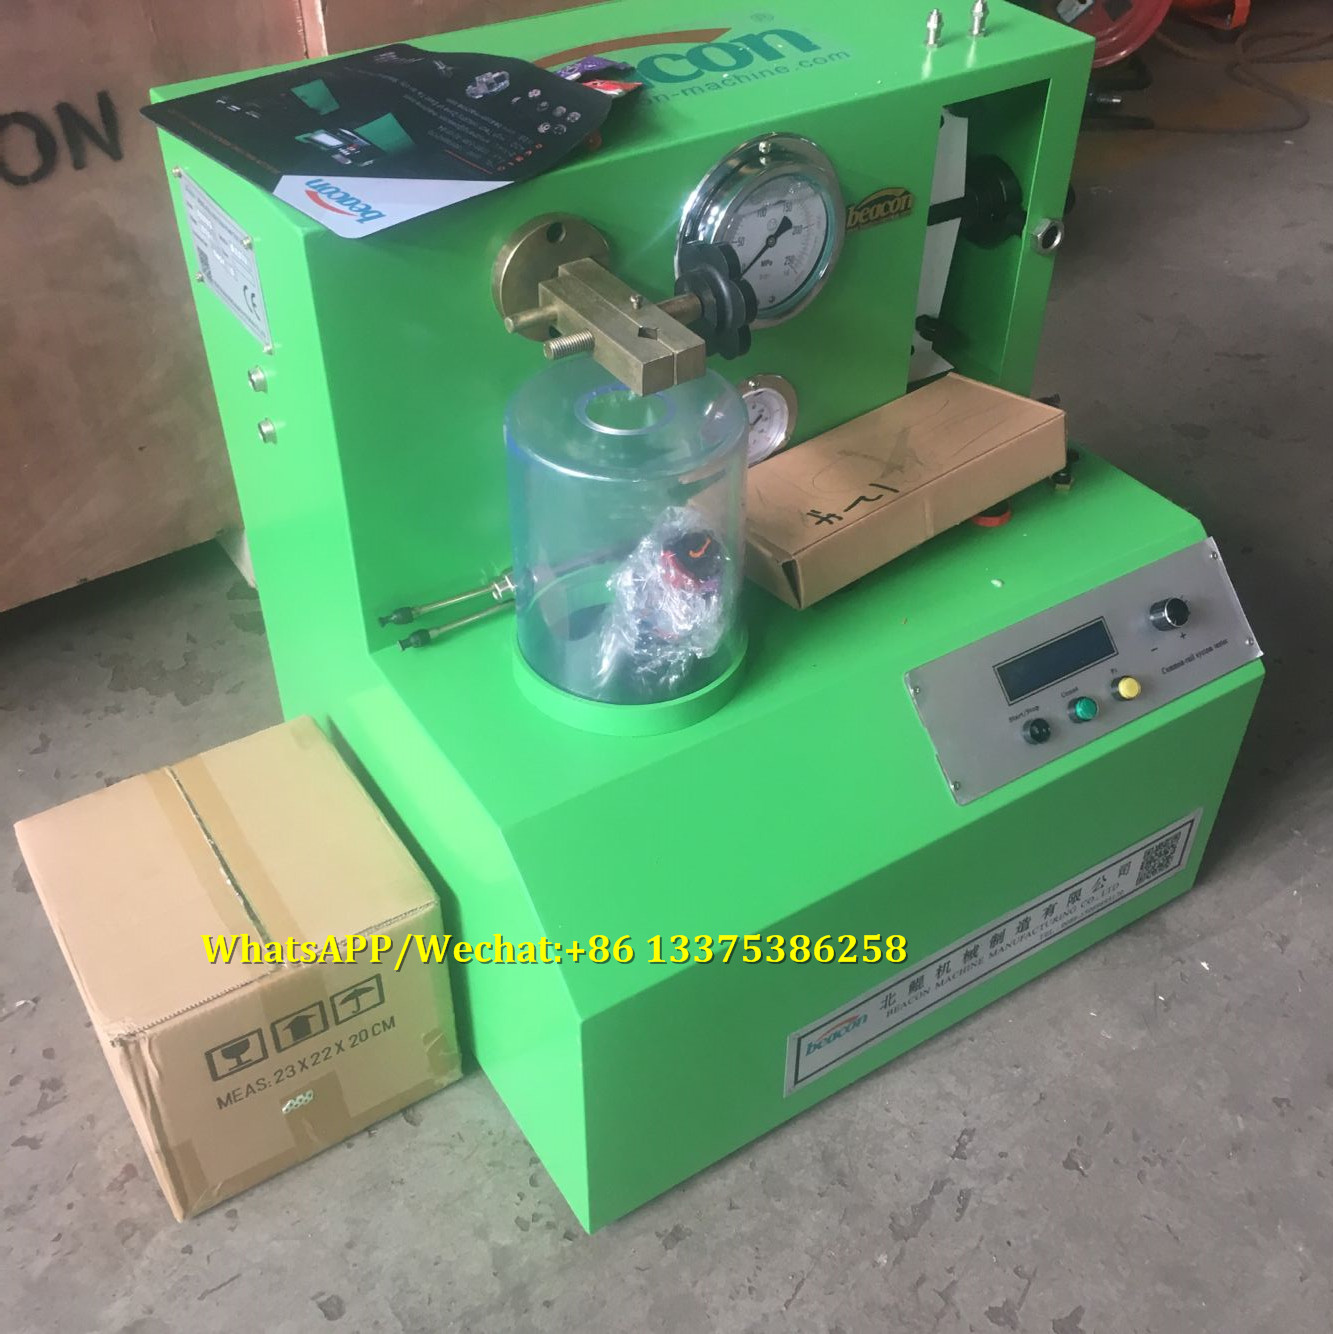 PQ1000 cr common rail diesel fuel injector test equipment